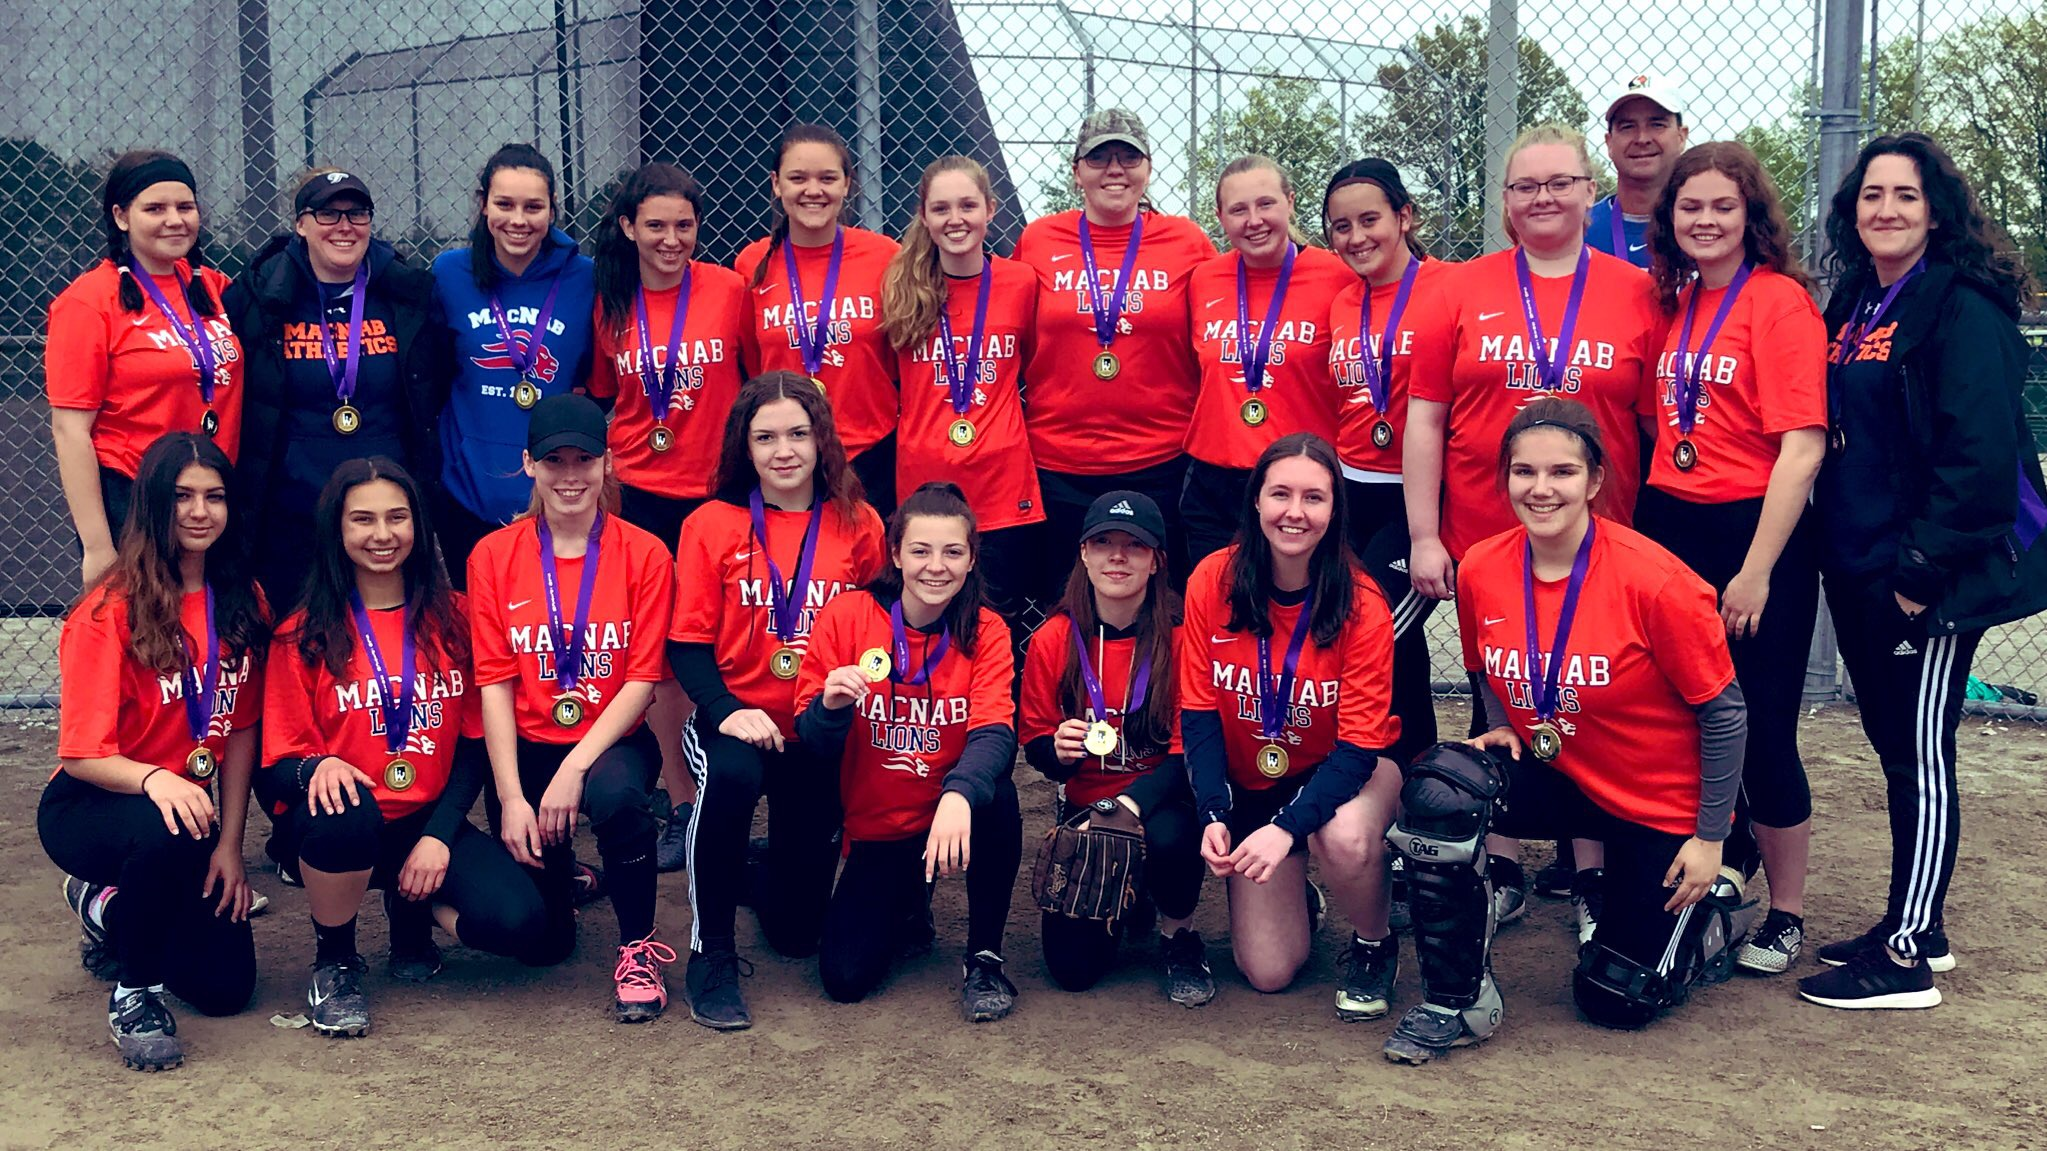 2018-19 Girls Softball